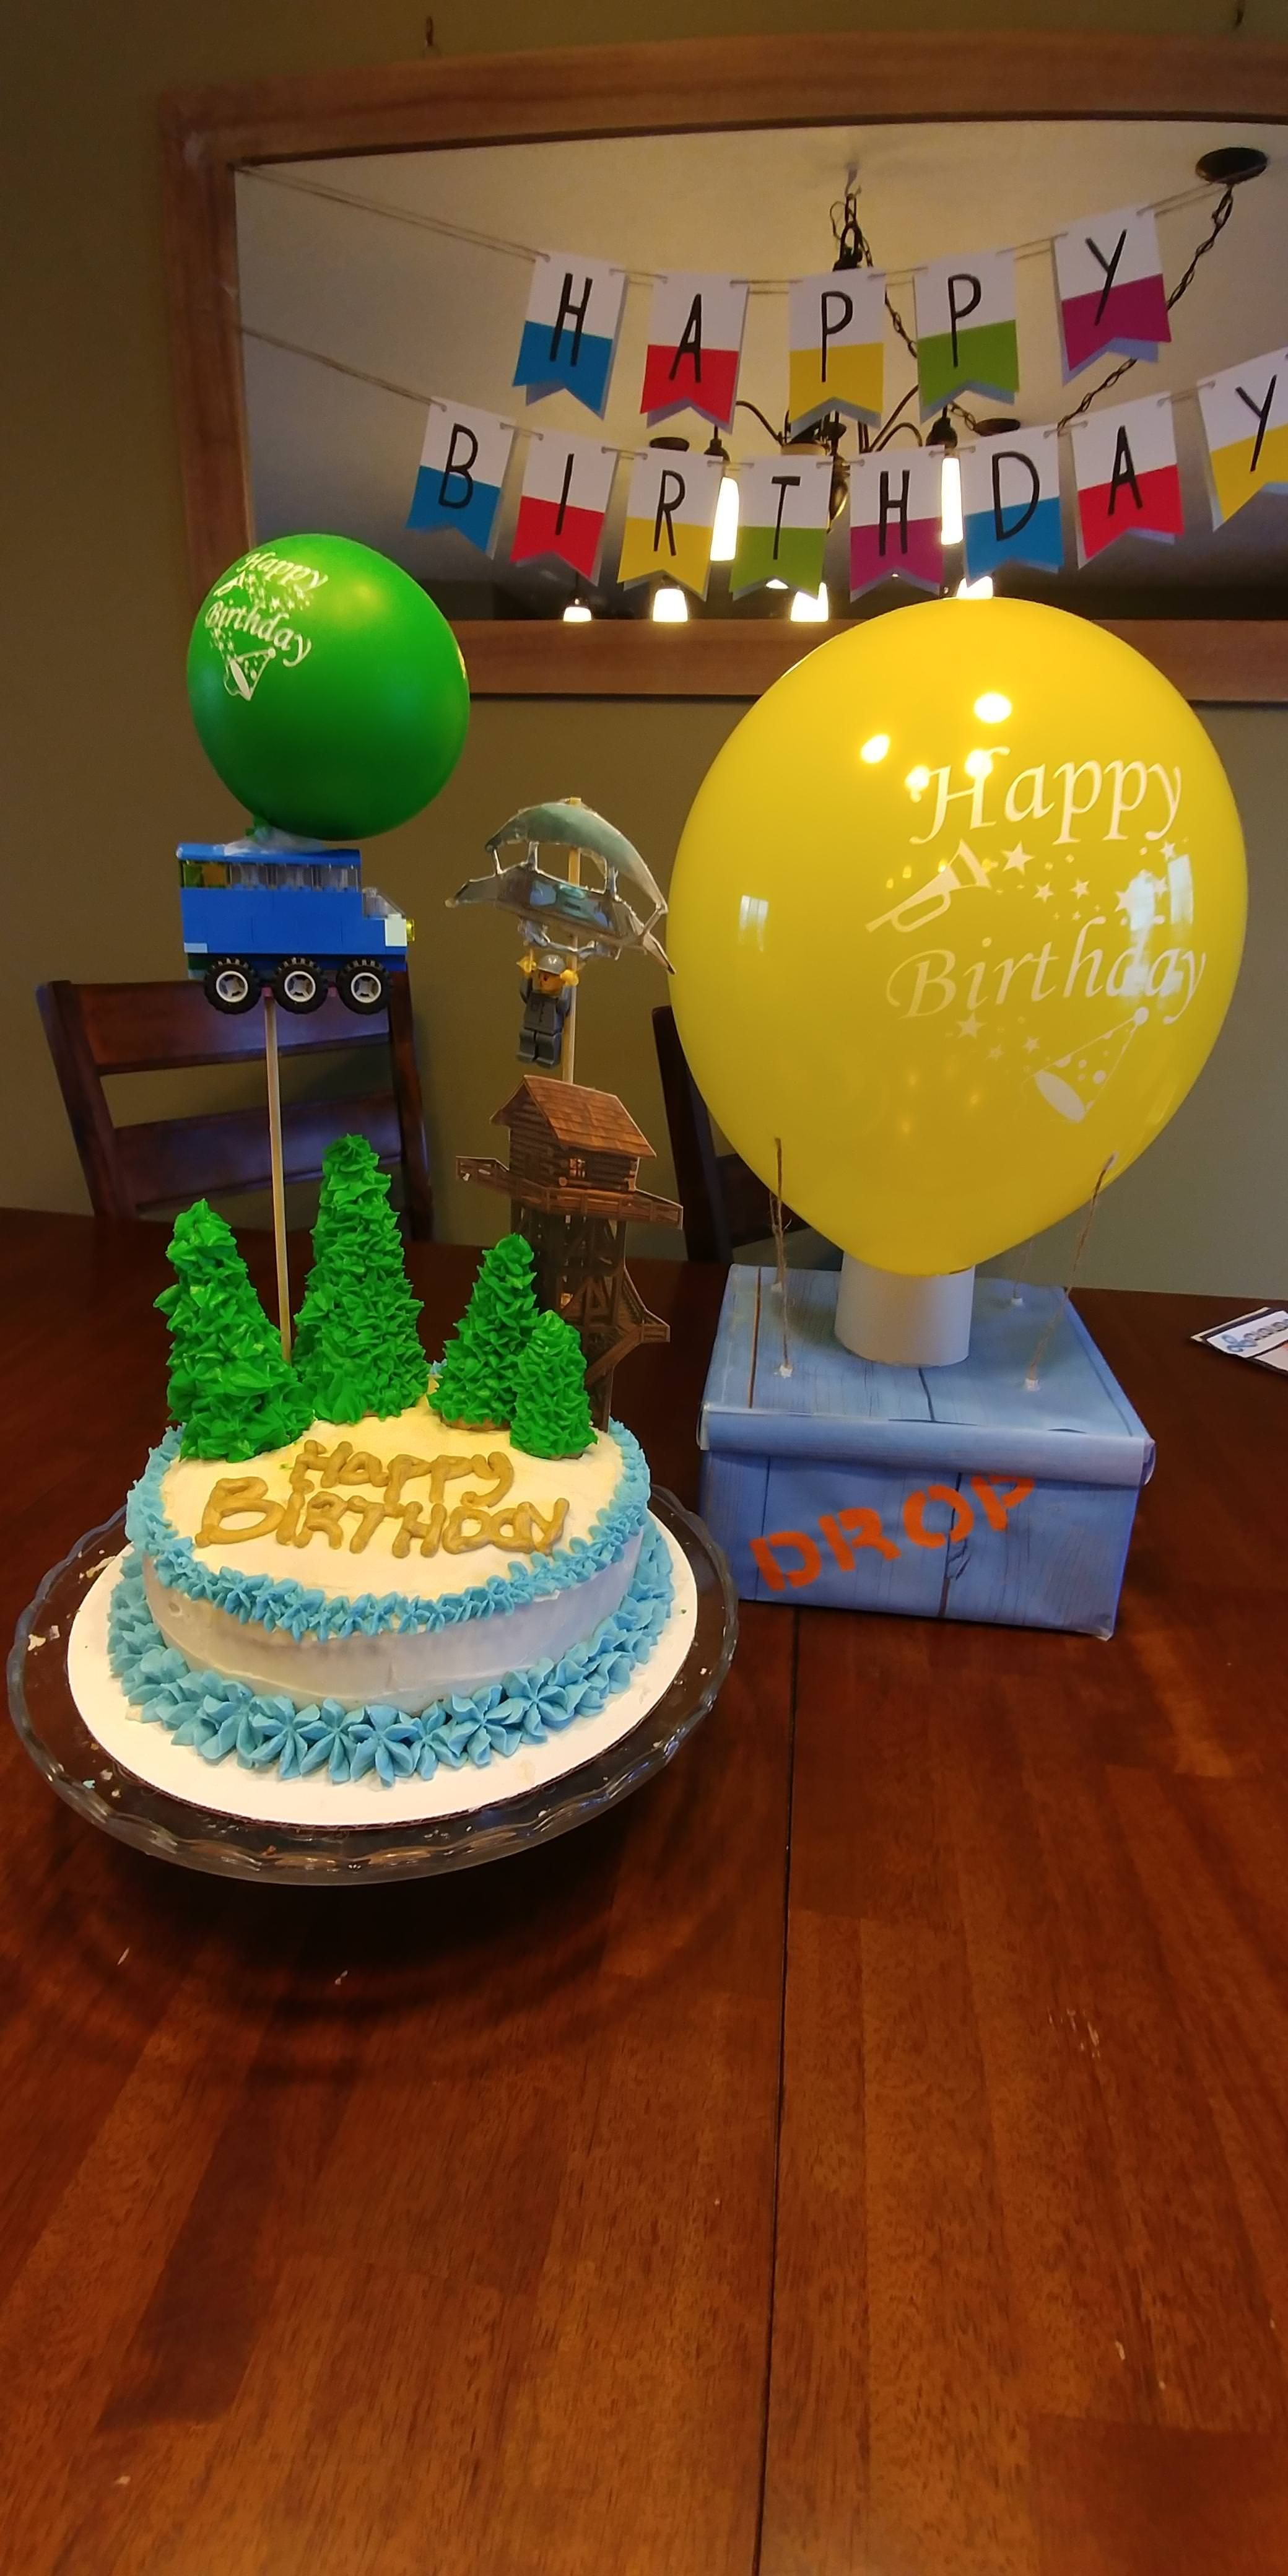 my wife surprised me with a fortnite cake for my 28th birthday, and